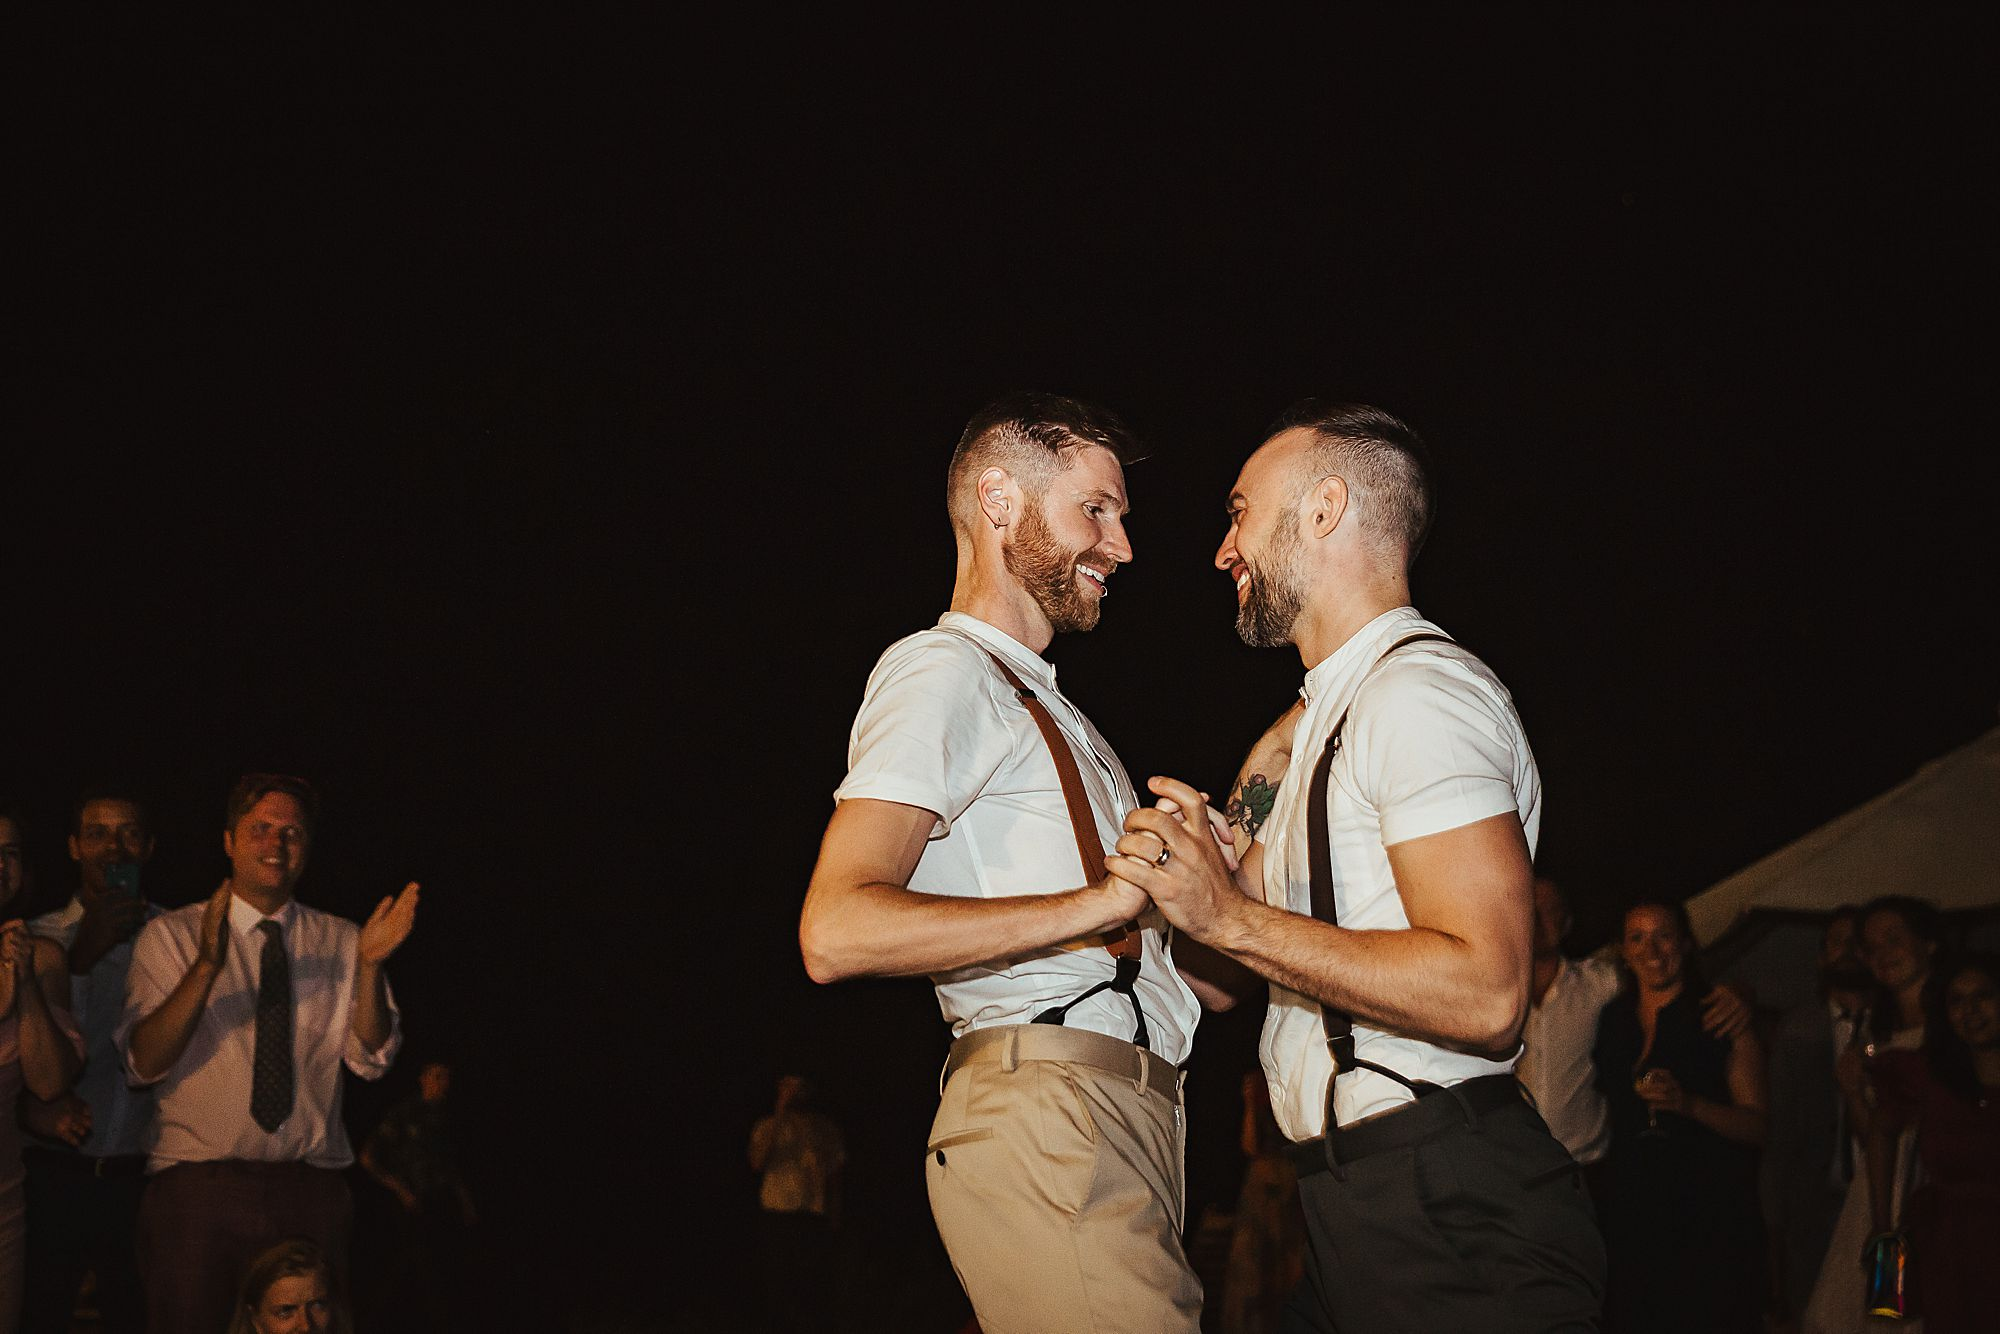 danncing gay wedding in France